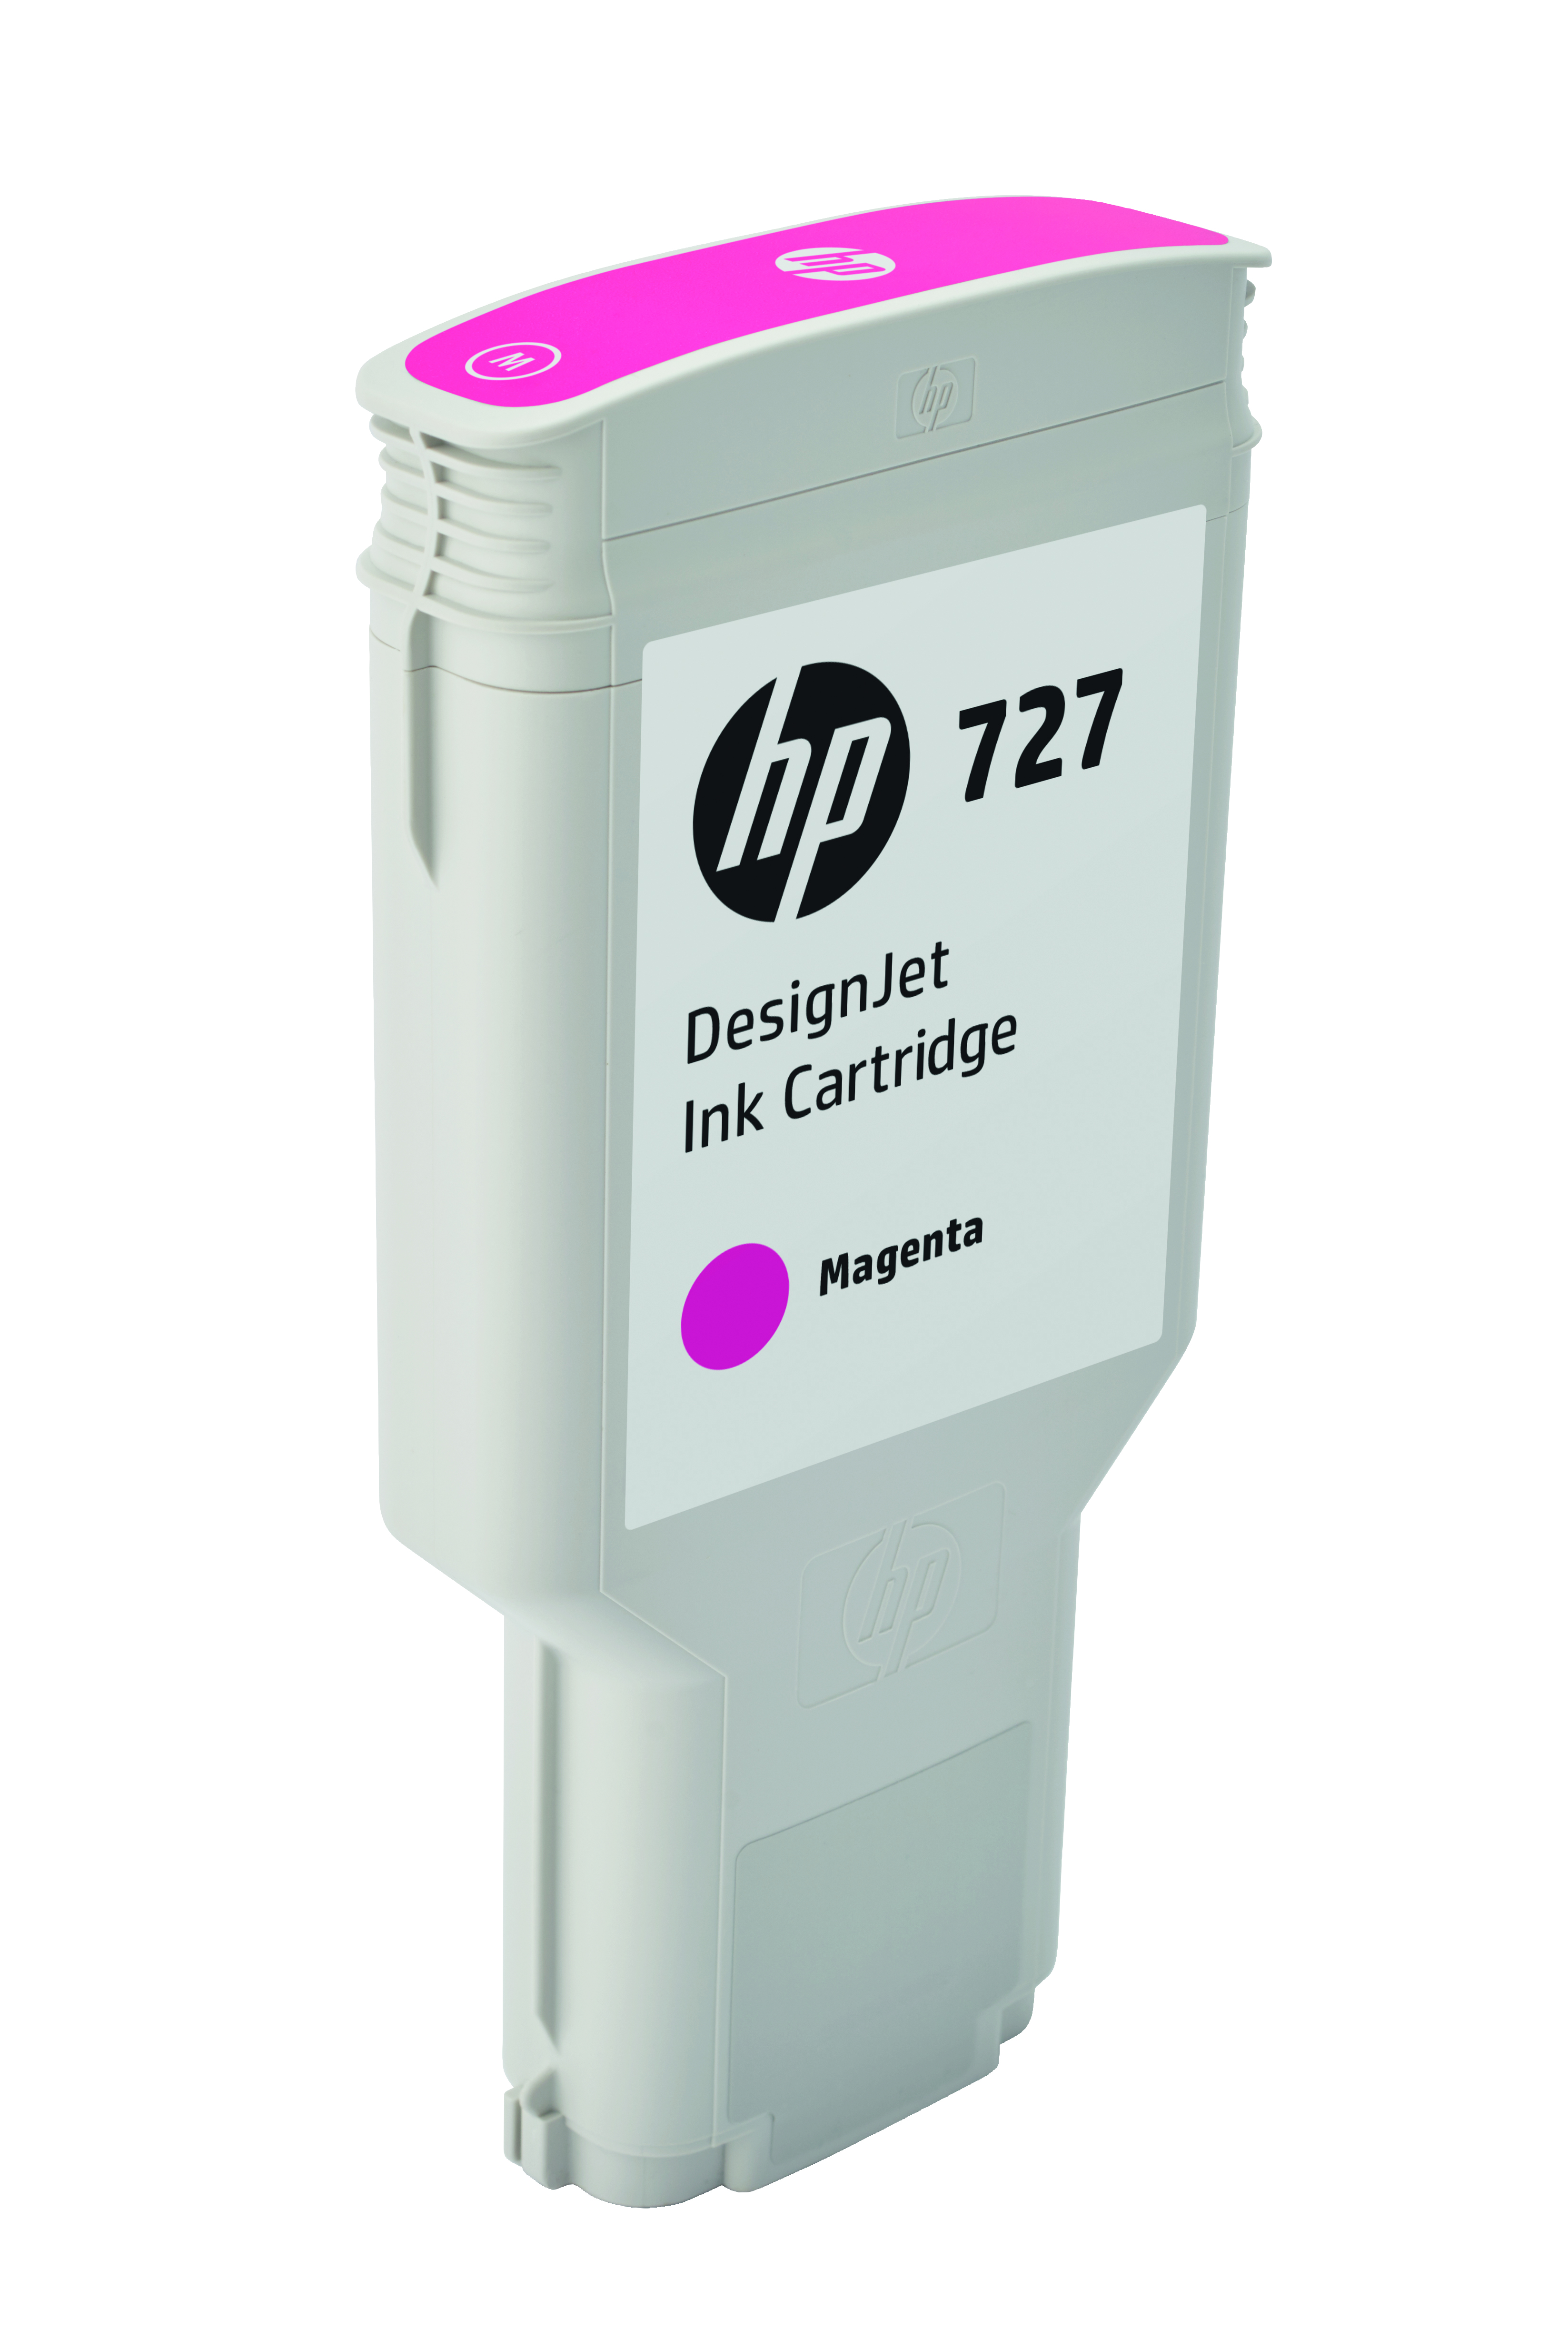 Hpf9j77a       Hp 727 300ml Magenta Ink       Hp 727 300ml Magenta Ink                                     - UF01